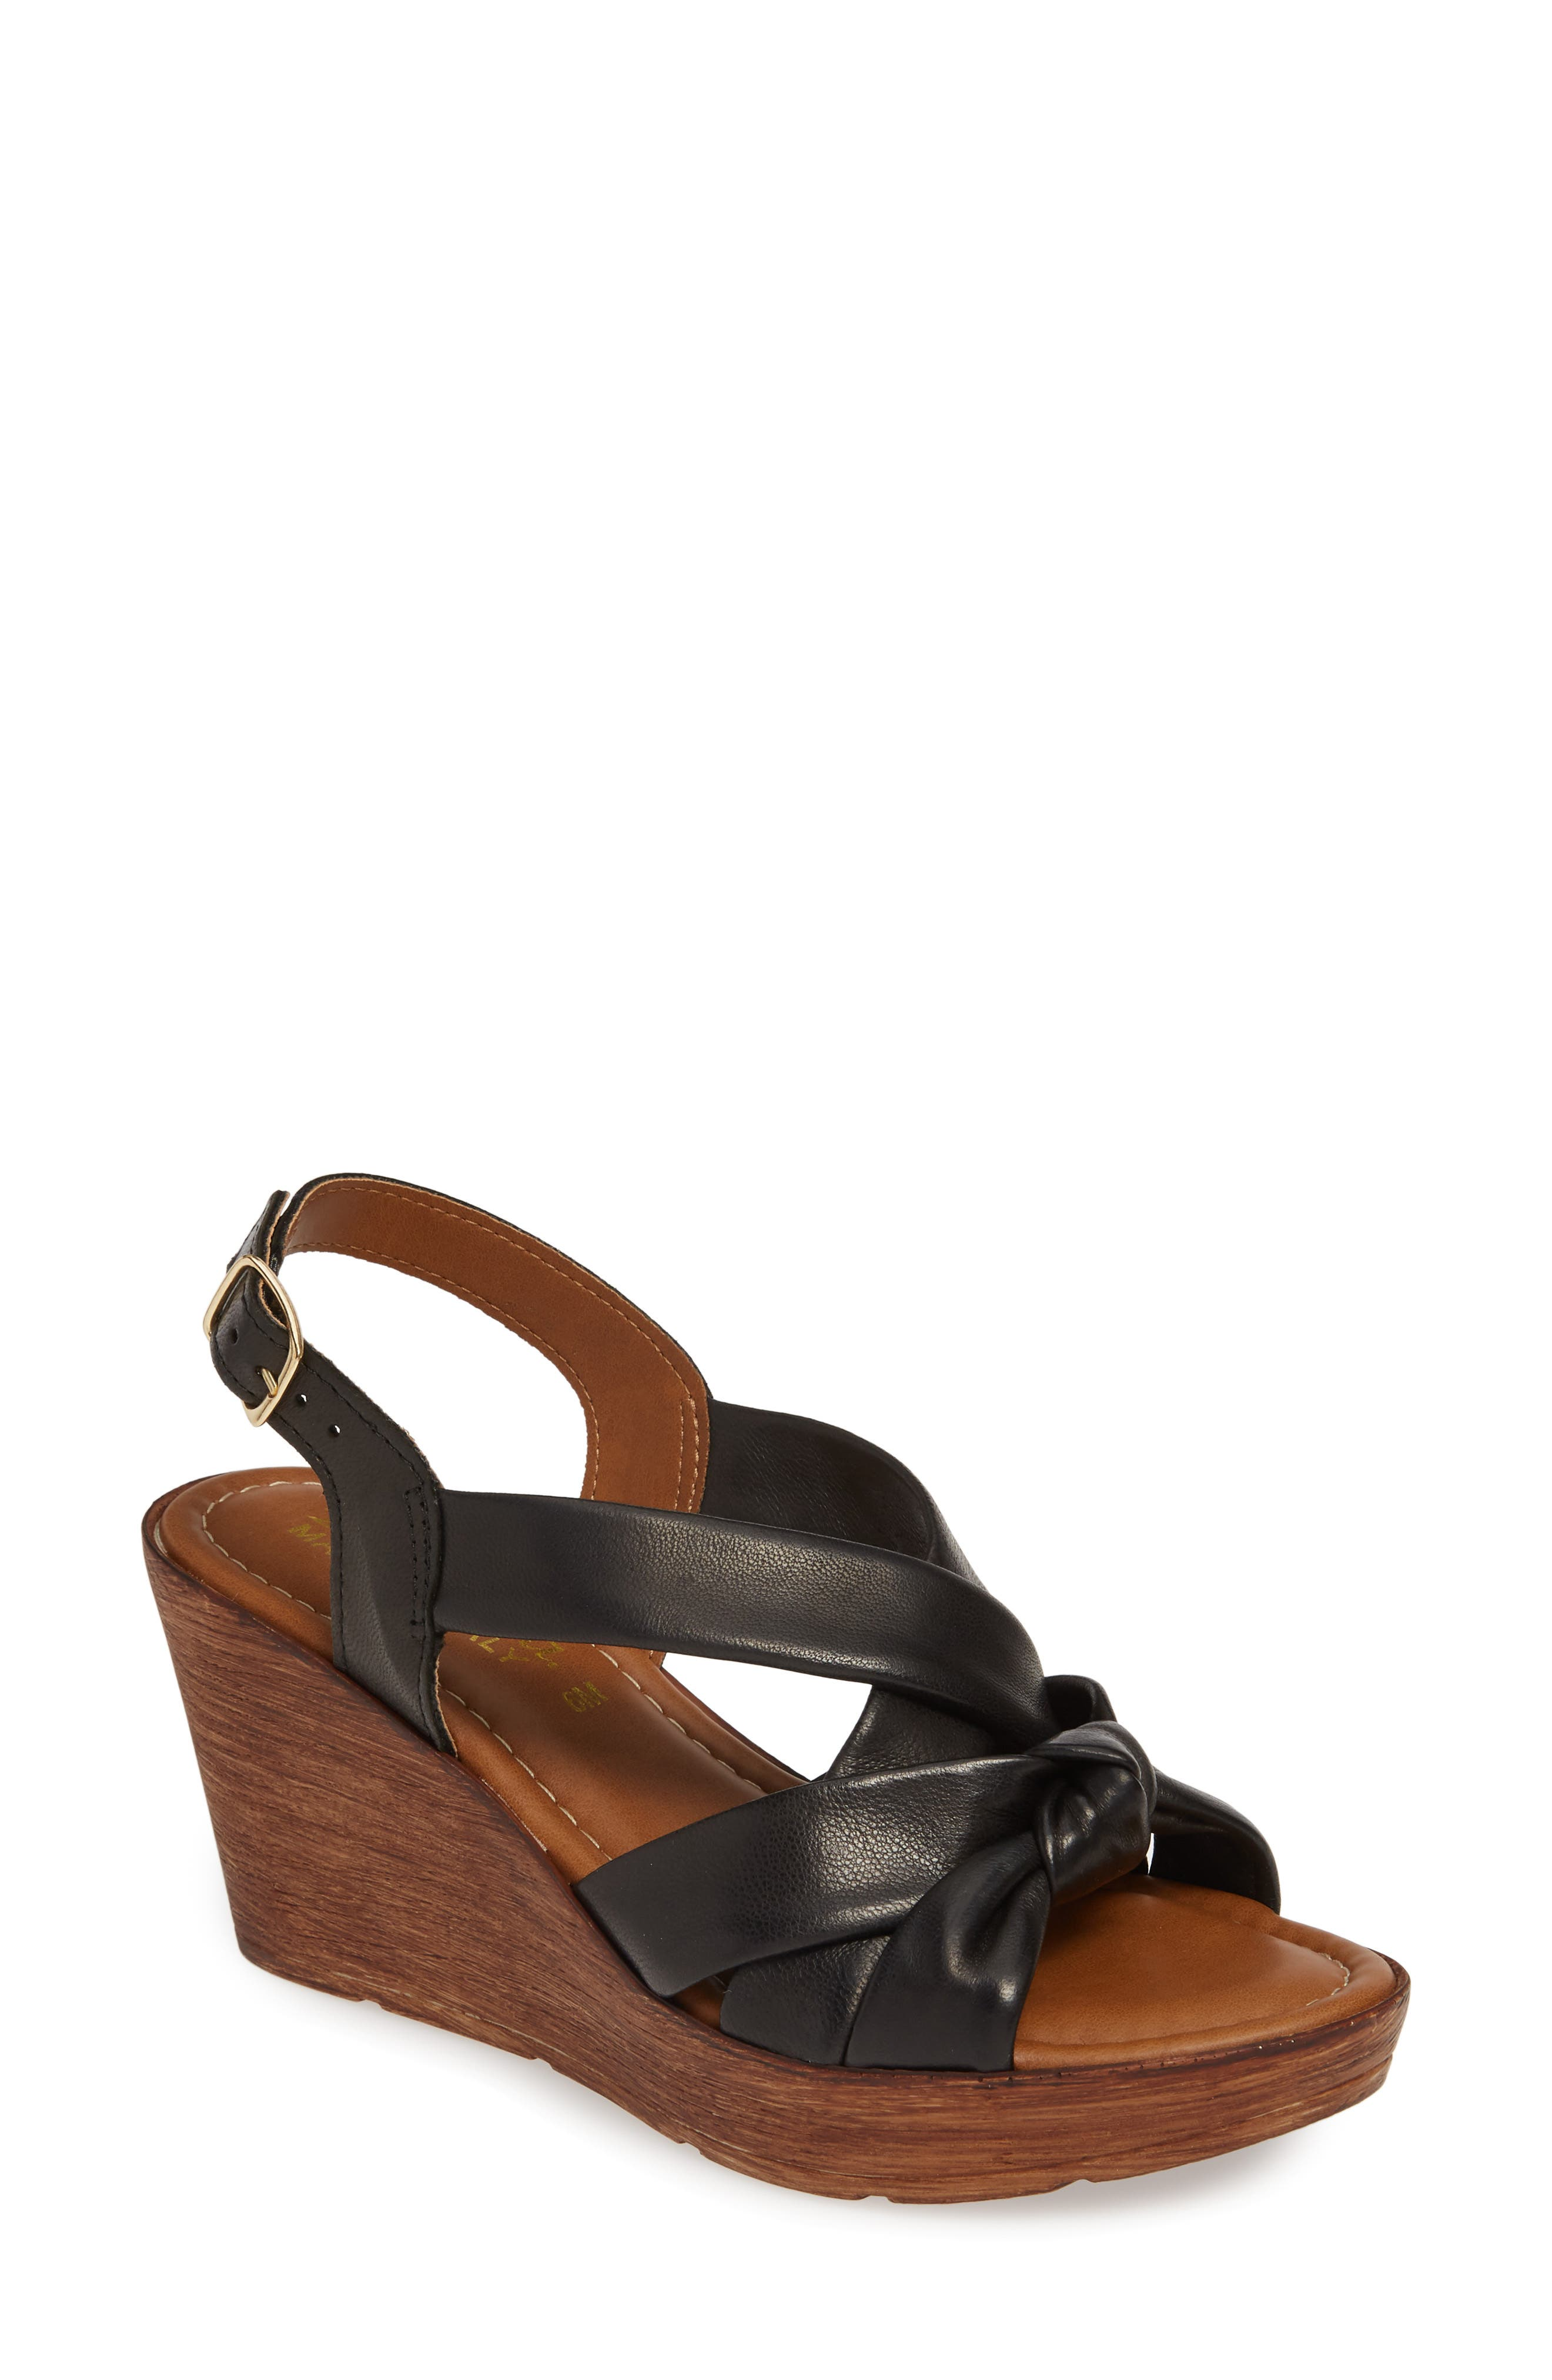 BELLA VITA, Italy Wedge Sandal, Main thumbnail 1, color, BLACK ITALIAN LEATHER